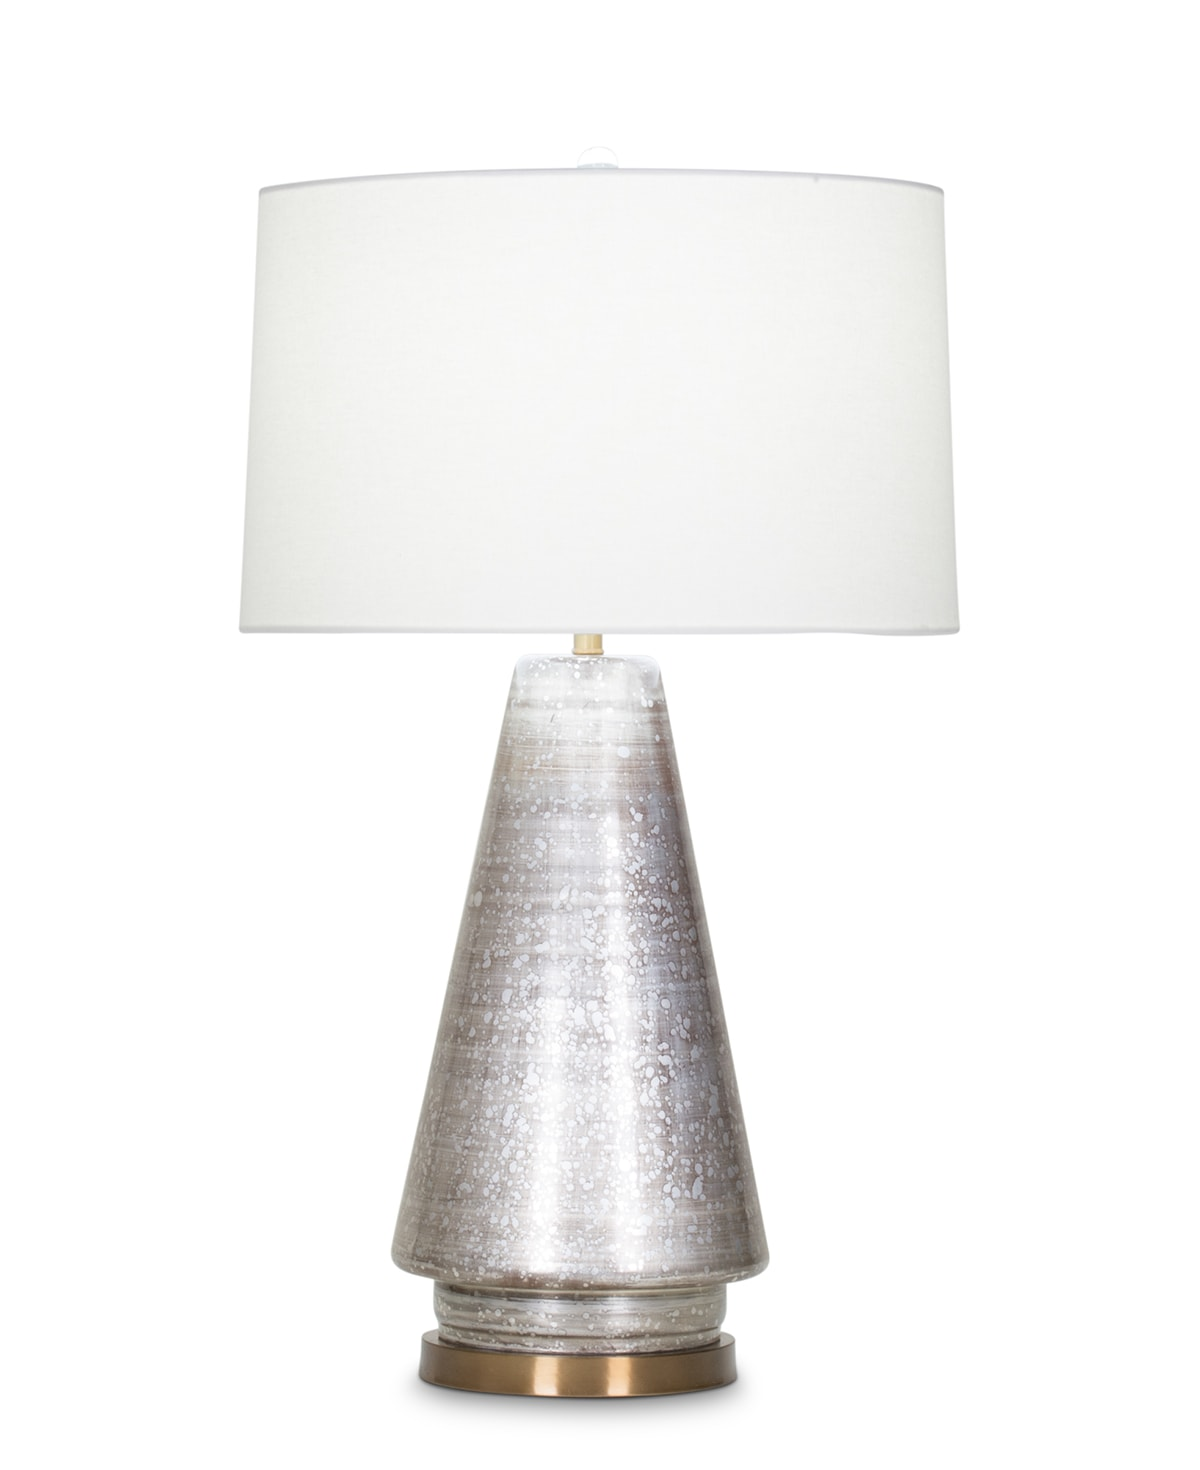 FlowDecor Bronte Table Lamp in mouth-blown glass with dark champagne metallic finish and off-white linen tapered drum shade (# 4033)